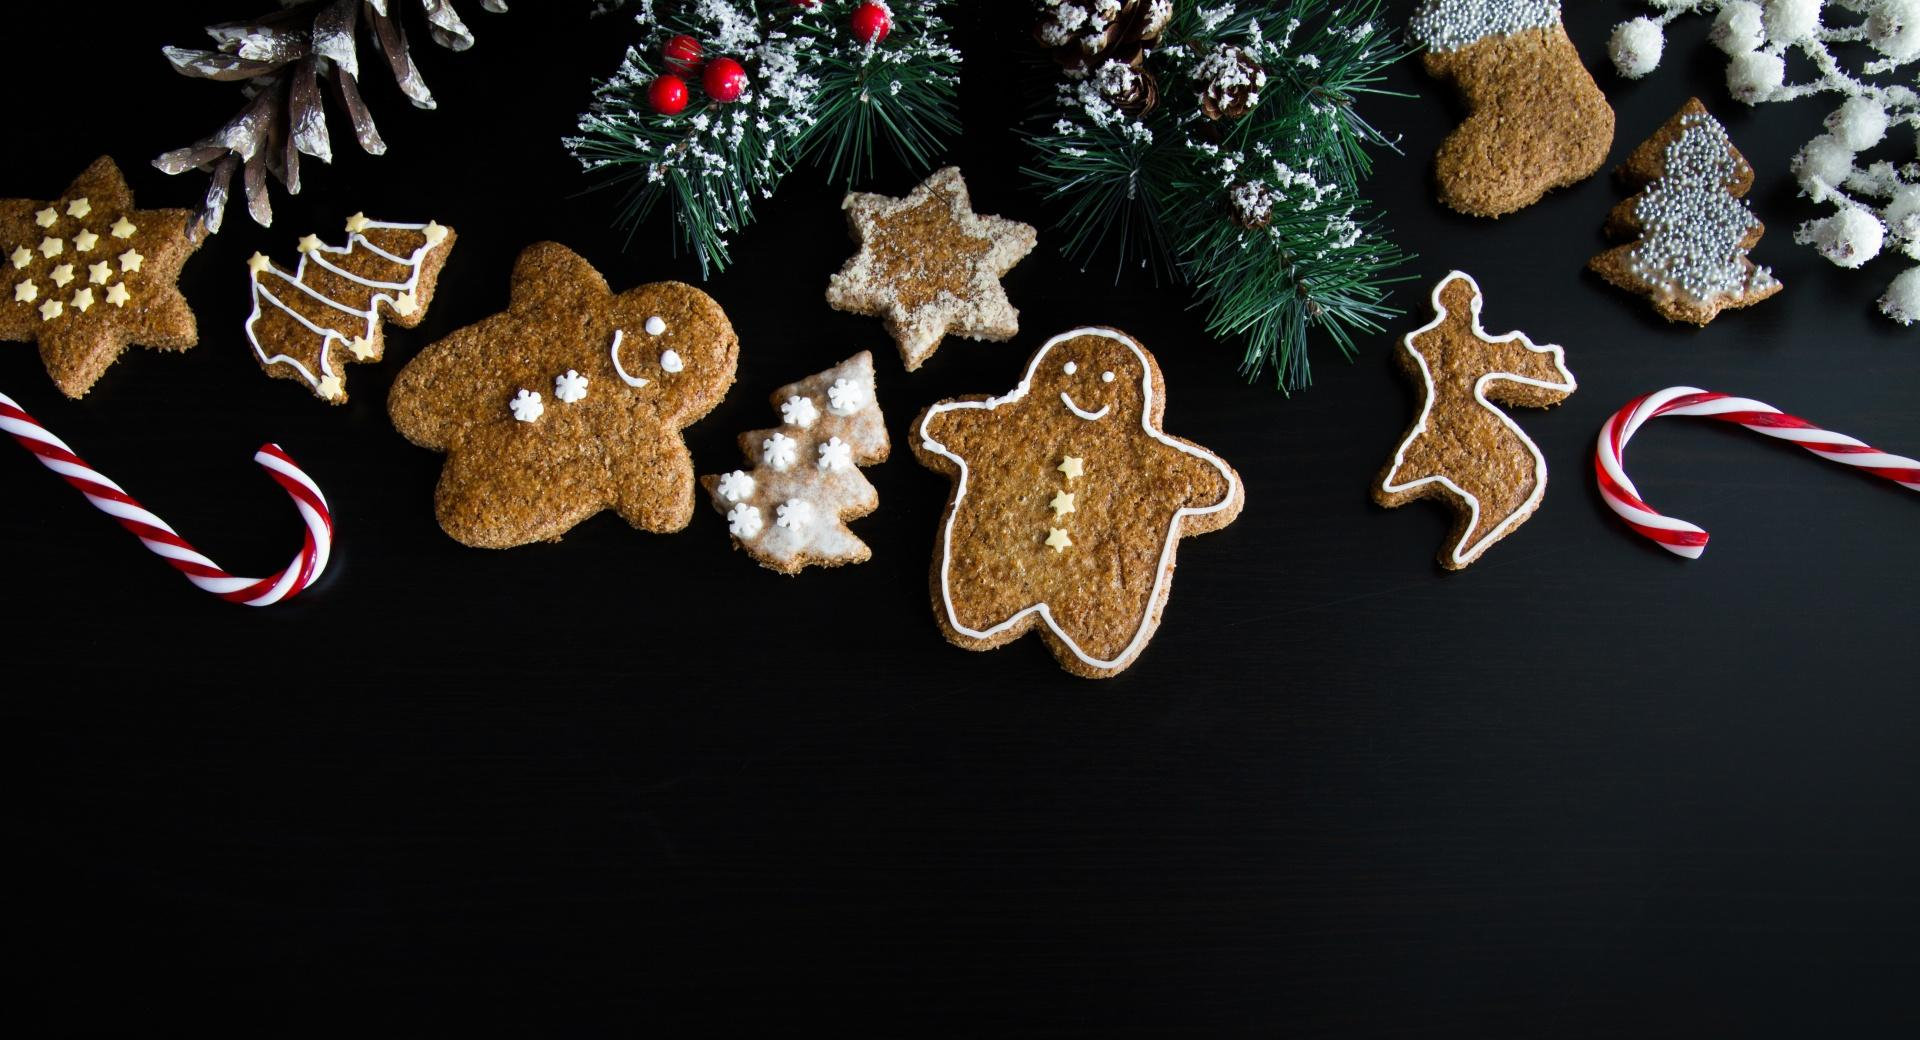 Xmas Gingerbread Man wallpapers HD quality